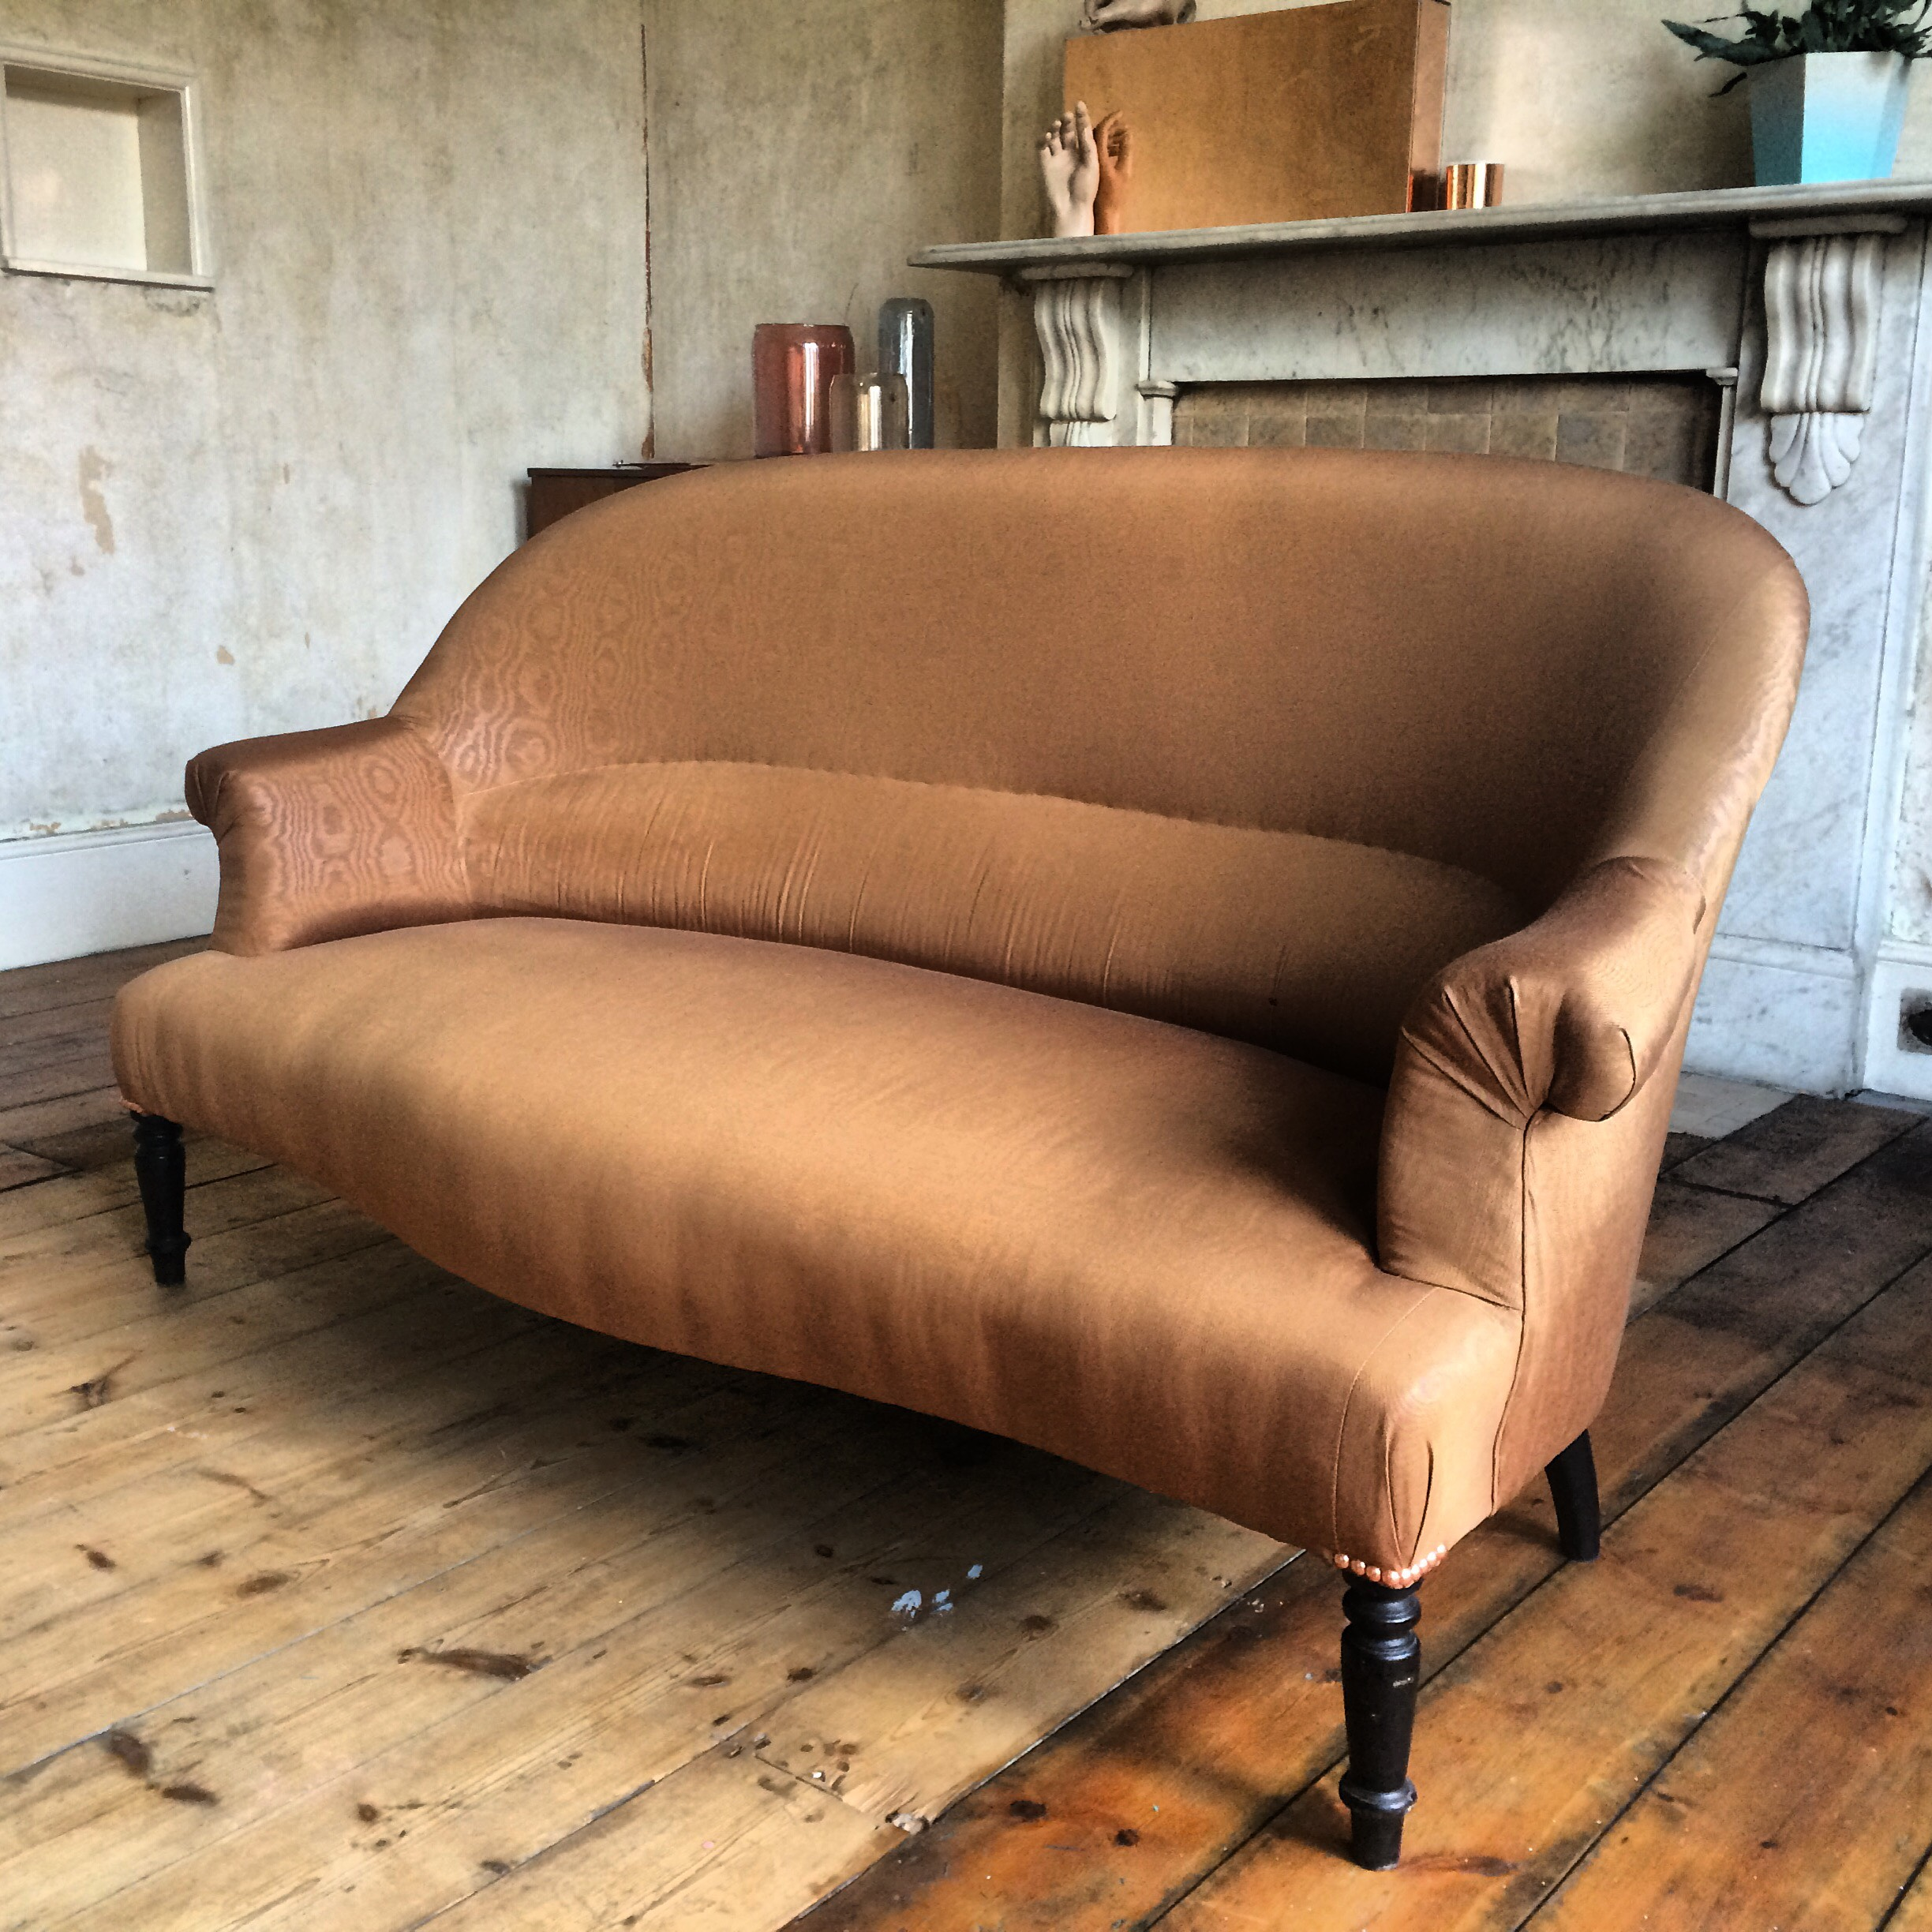 toptip bettsofa guest buy sofa bed uk how to decorate with dulux s color of the year cherished gold top tip pair a sky blue for an inviting yet sophisticated interior